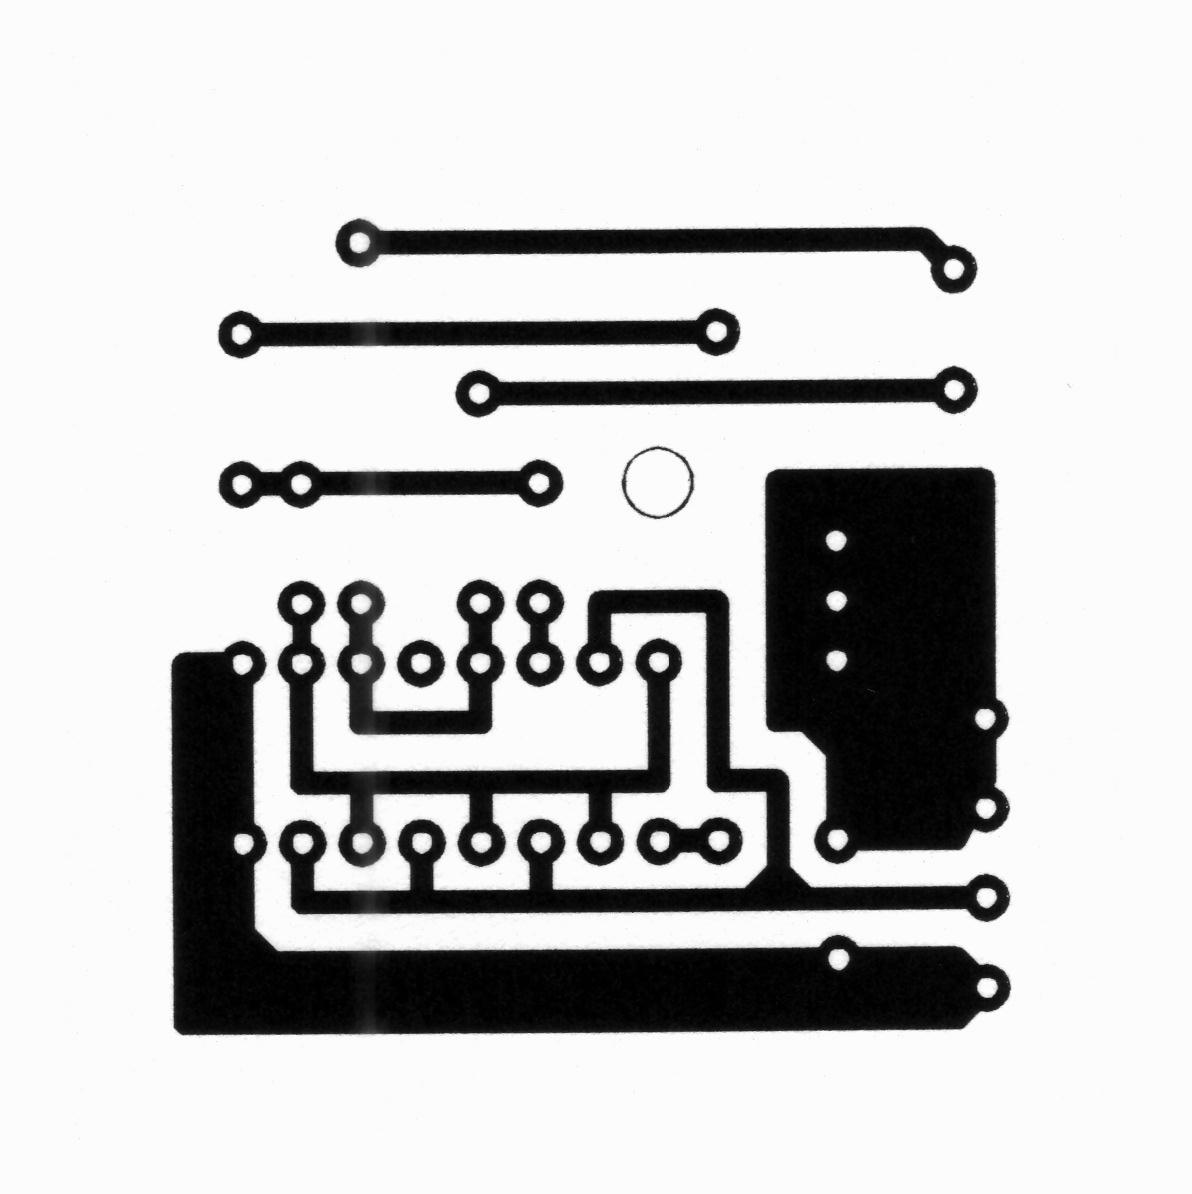 hight resolution of the small pc board is just for the impulse generator the rest can be wired by hand you may change it to fit to your trimmer many versions and capacitors